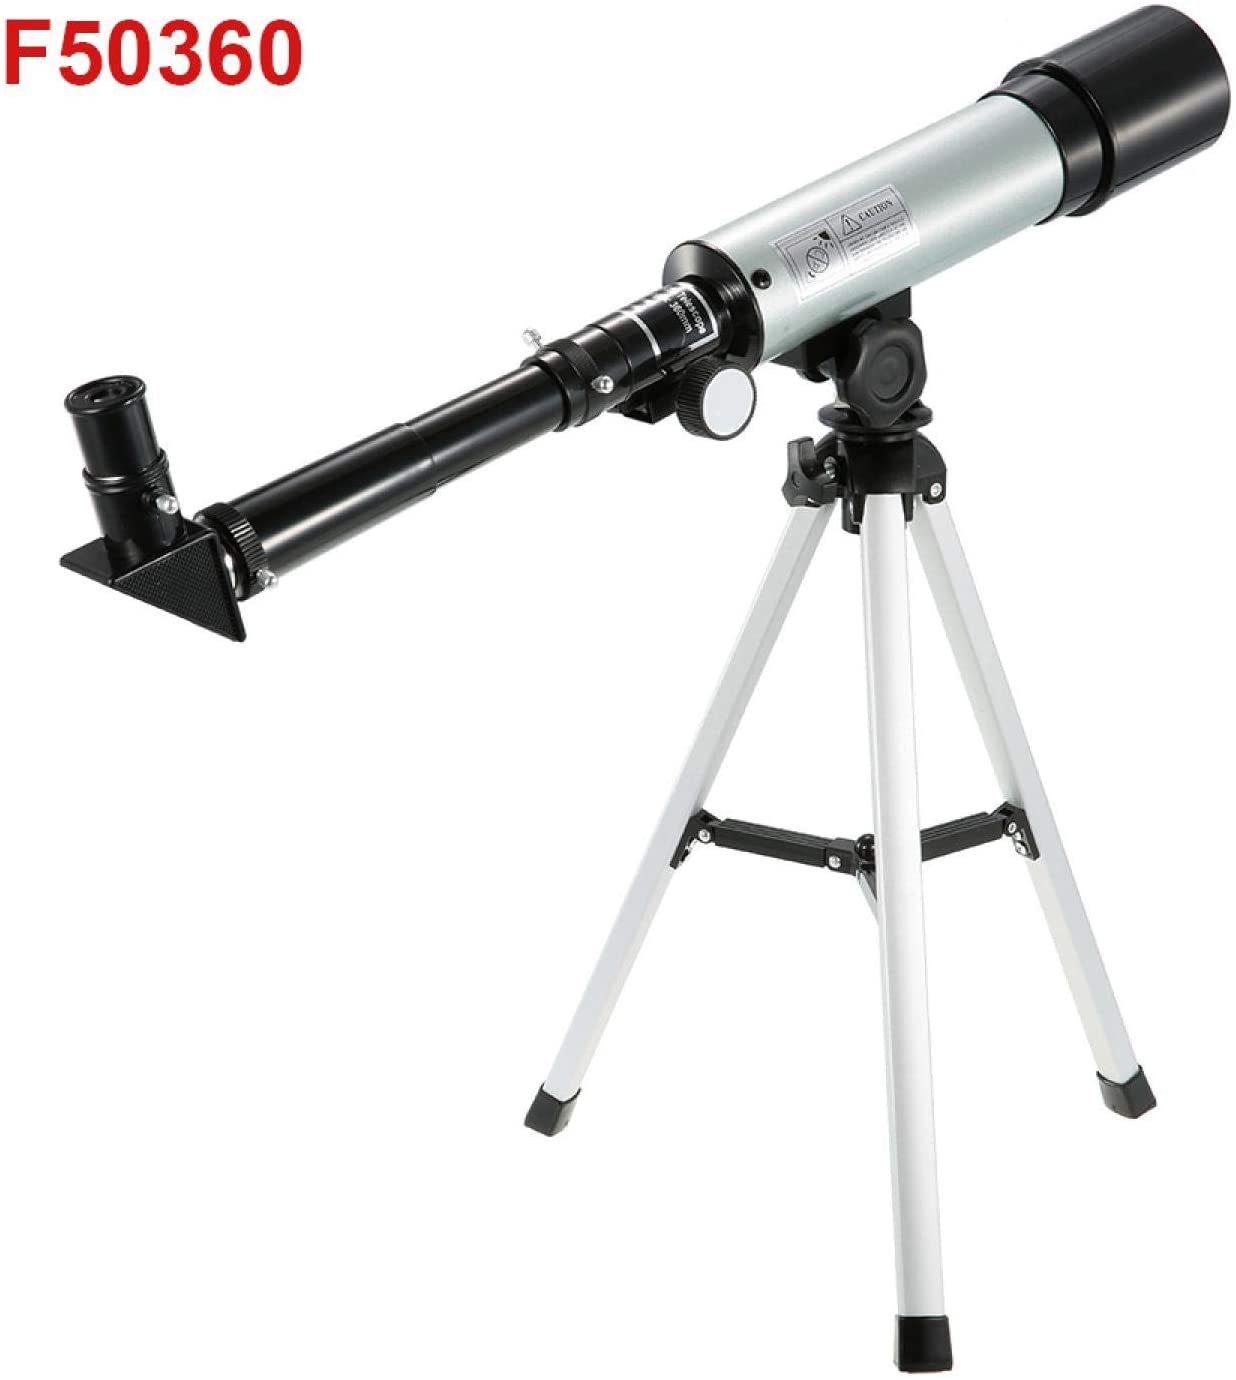 Professional Outdoor Monocular 150X Refractive Space Astronomical Telescope Travel Spotting Scope with Portable Tripod Lever